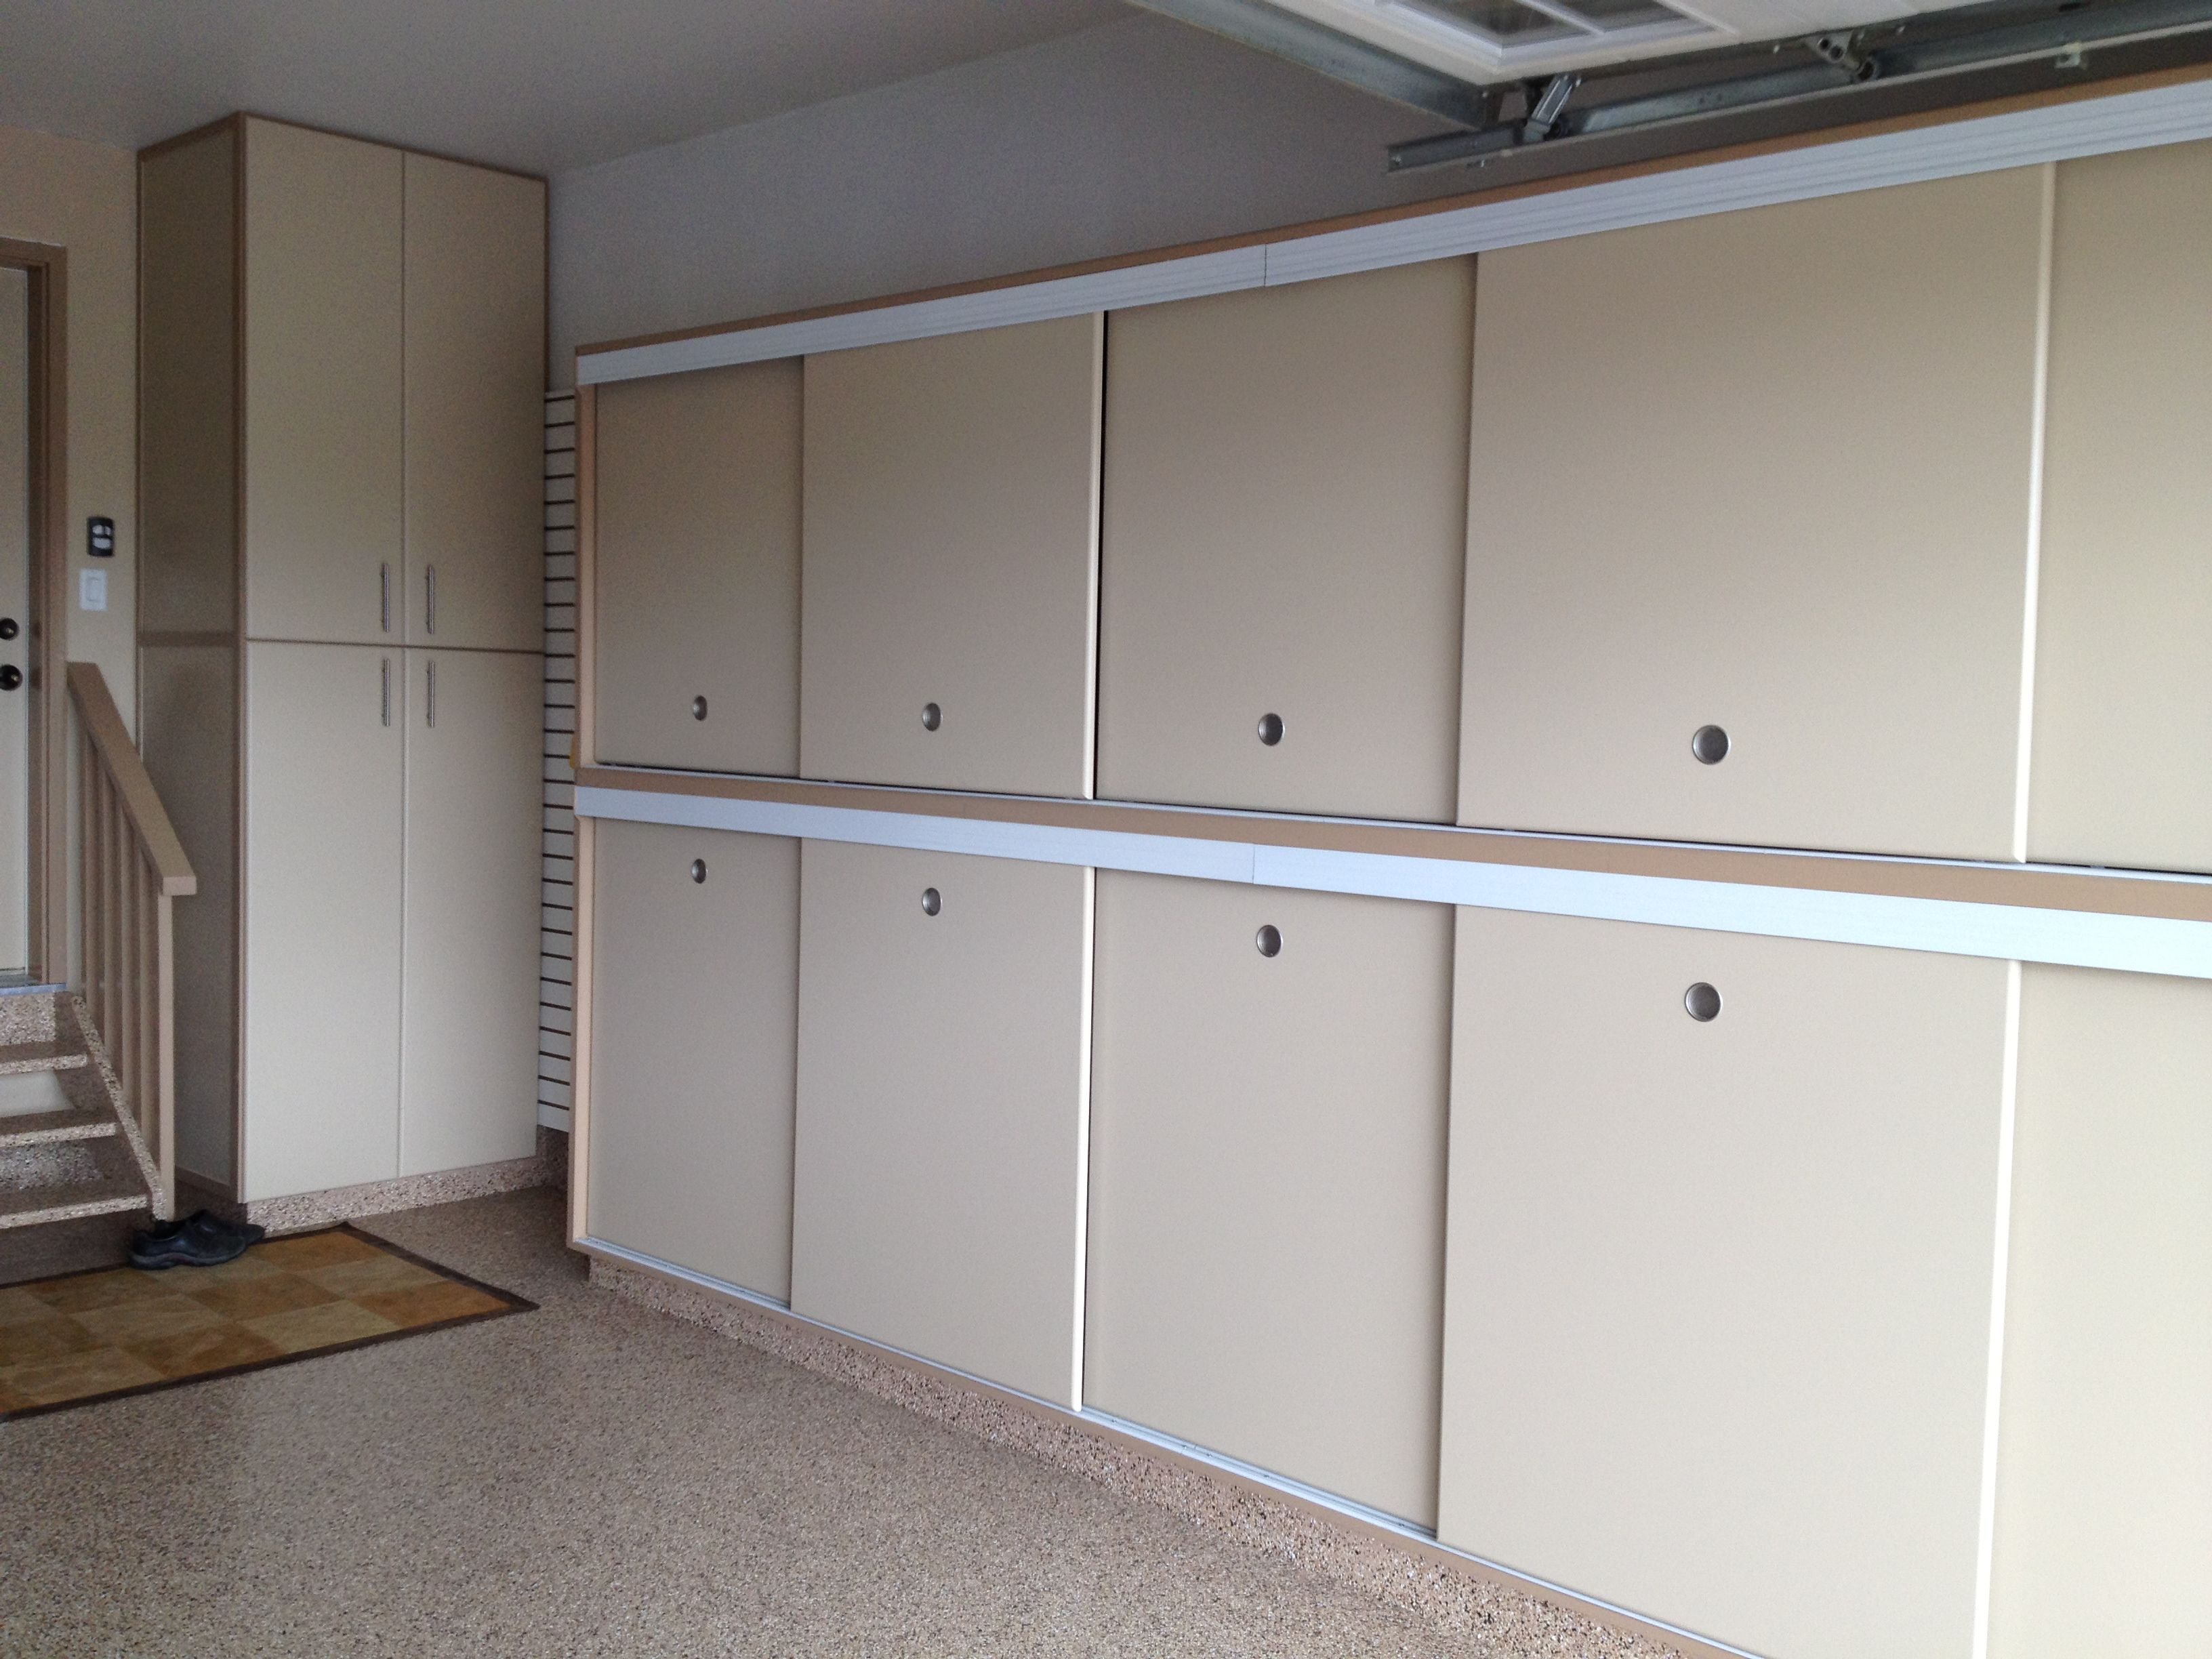 Storage Cabinet Sliding Doors Gerry Garage Slotwall Epoxy Floor Custom Cabinets Sliding